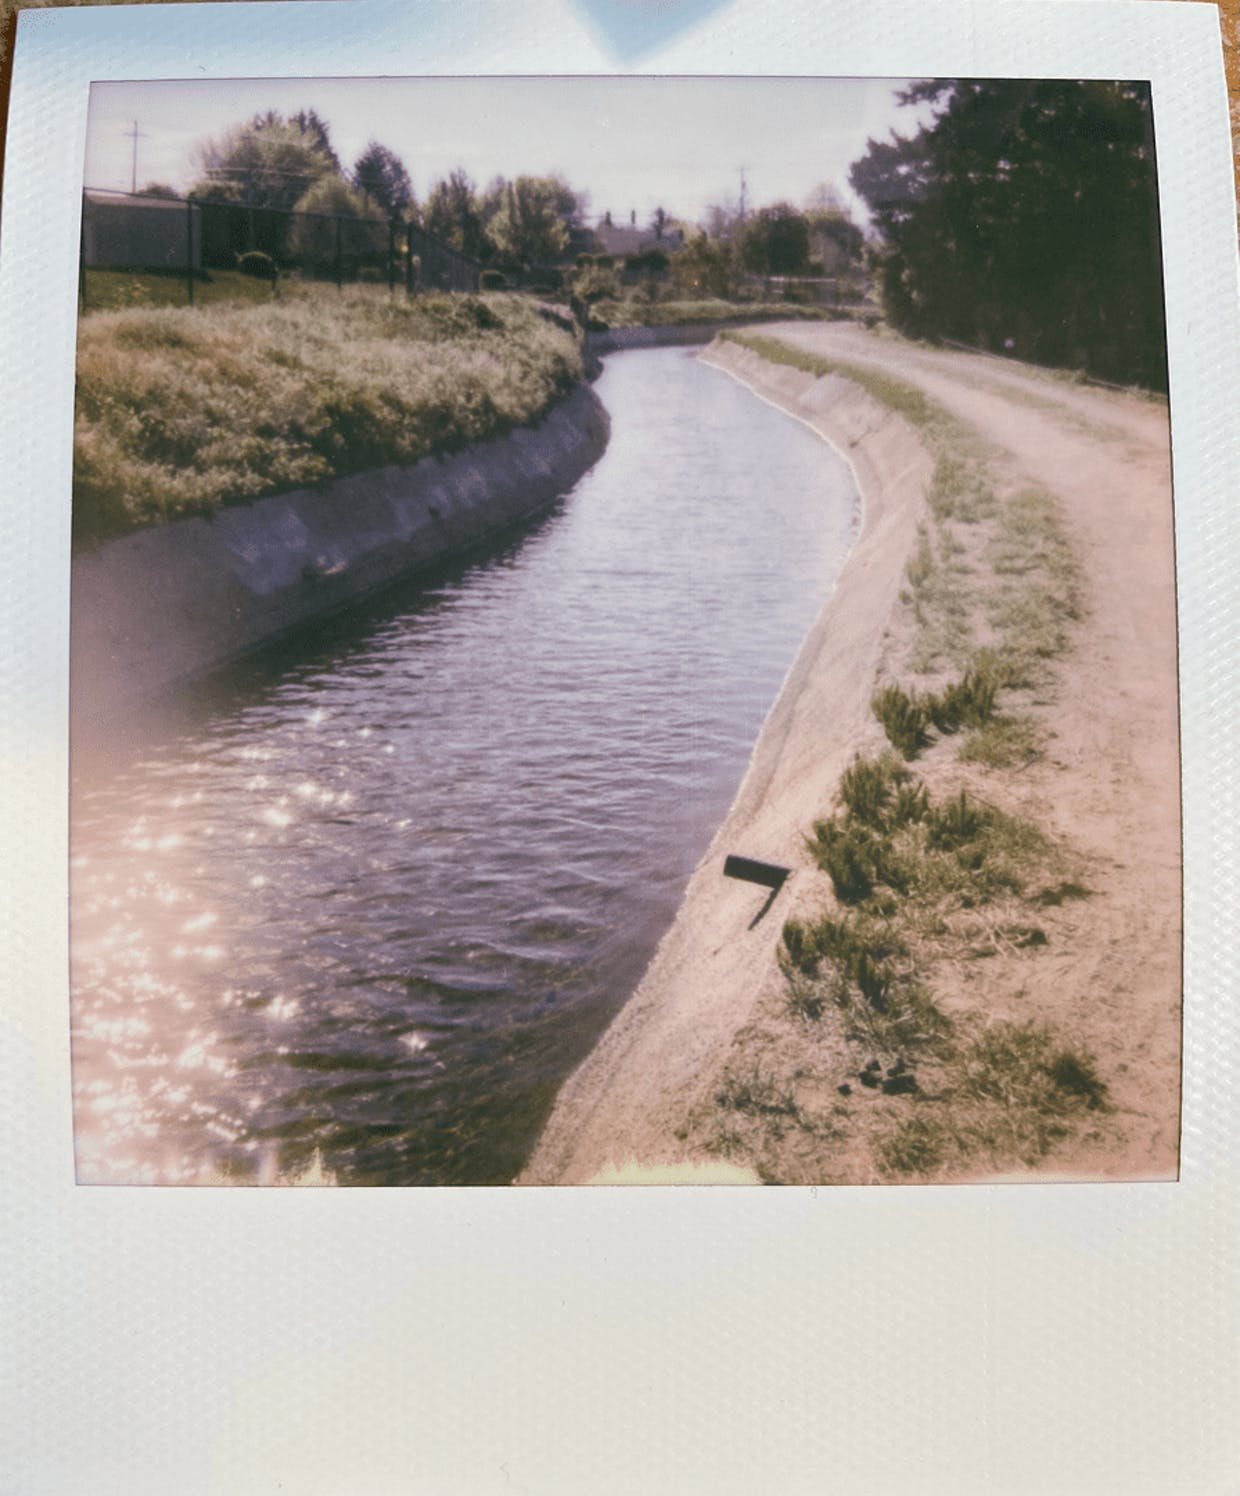 The canal along 11th Street in East Wenatchee